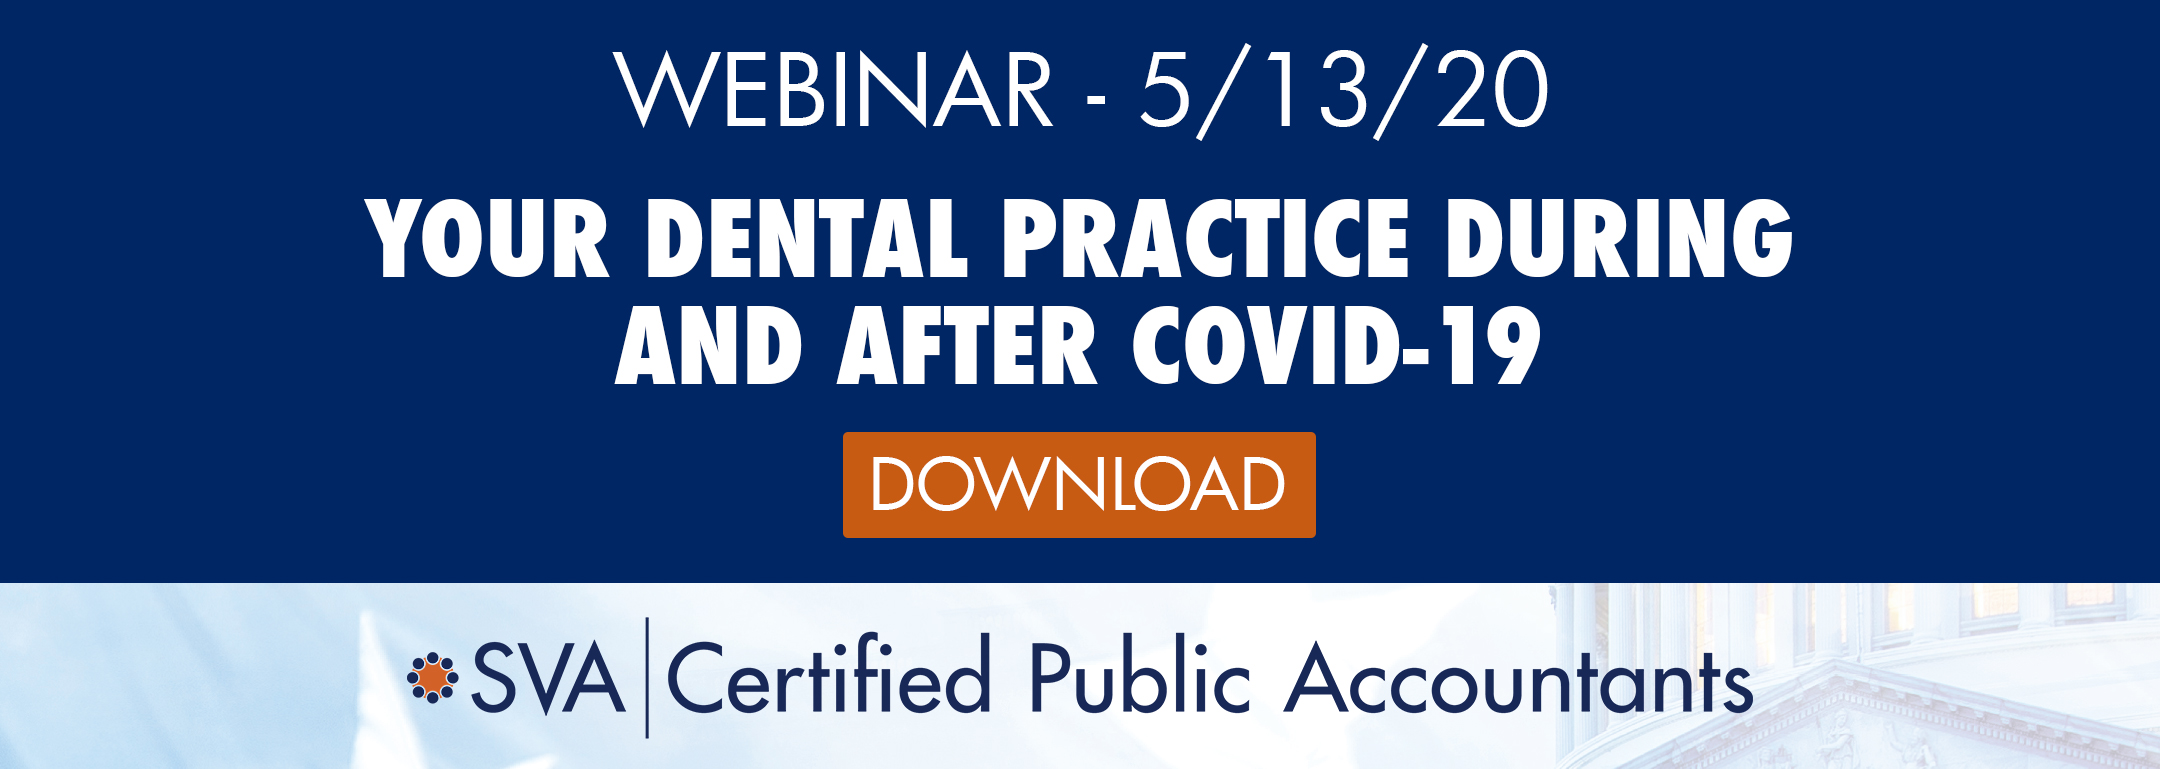 Your Dental Practice During and After COVID-19